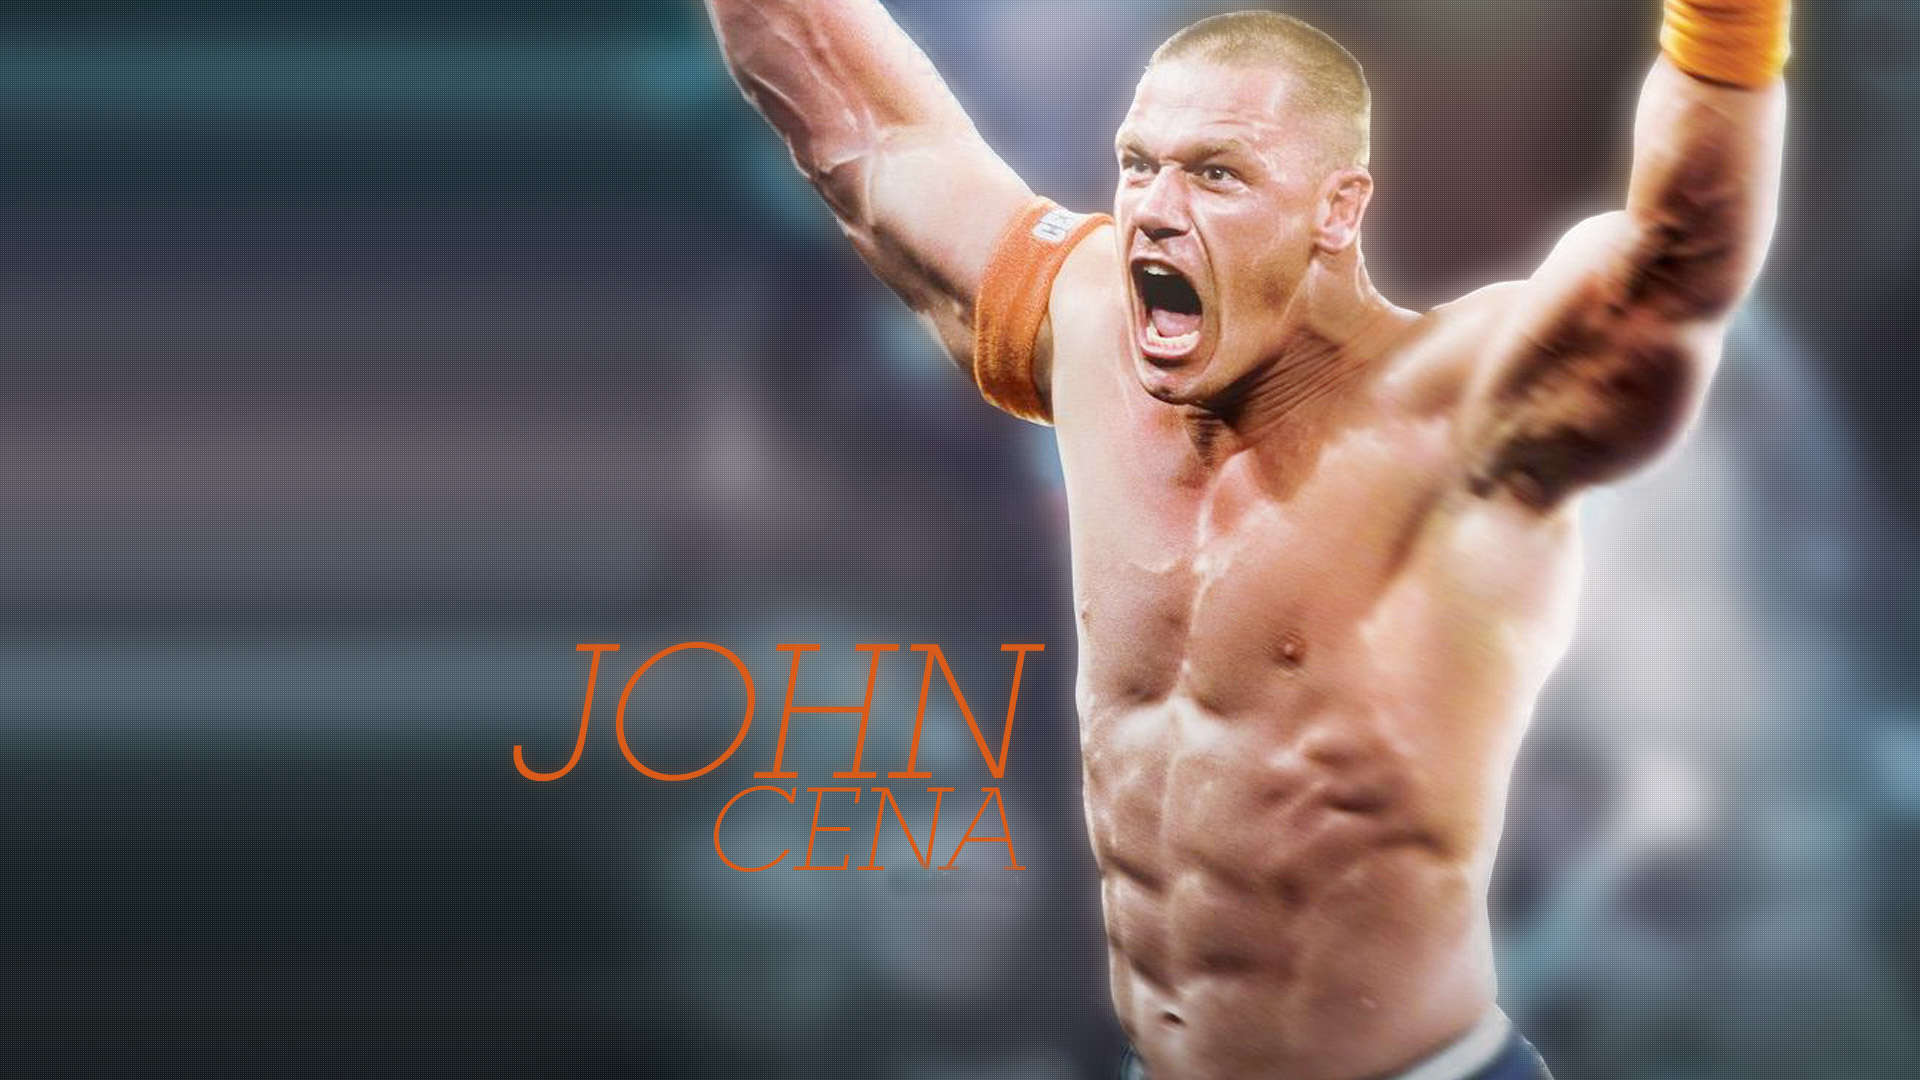 john cena hd wallpapers free download free all hd wallpapers 1920x1080